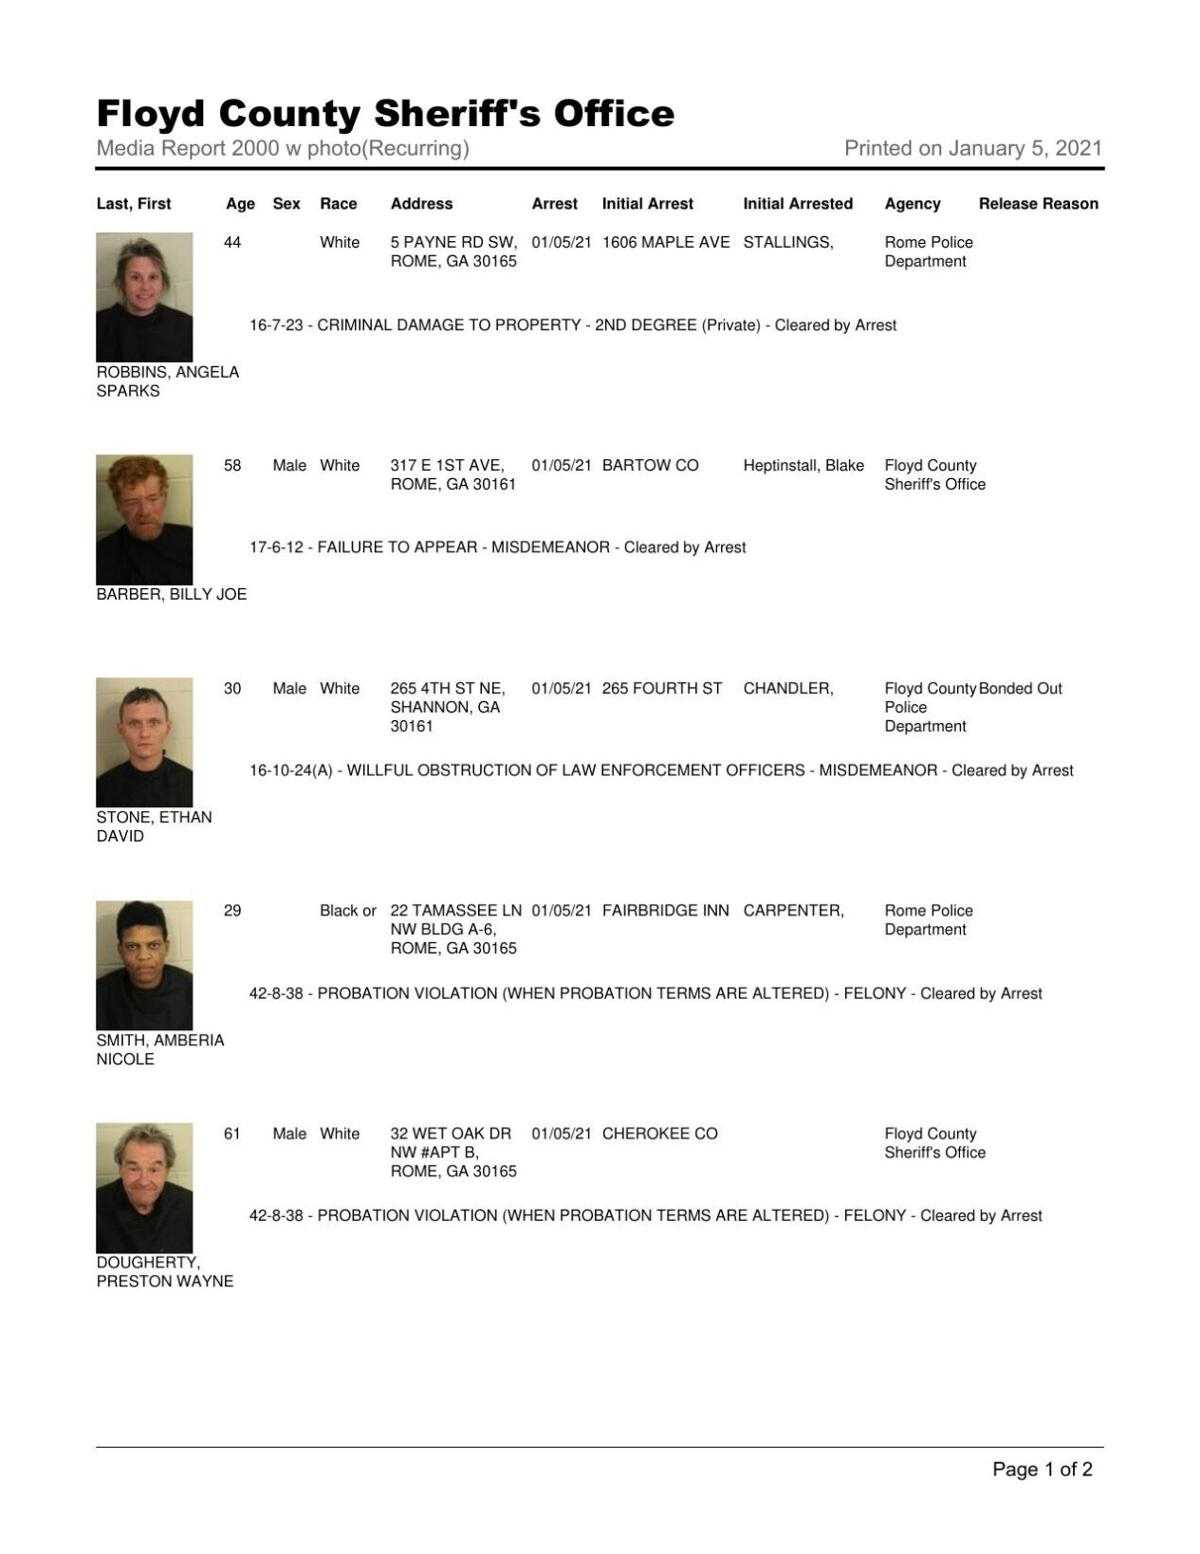 Floyd County Jail report for 8 pm Tuesday, Jan. 5